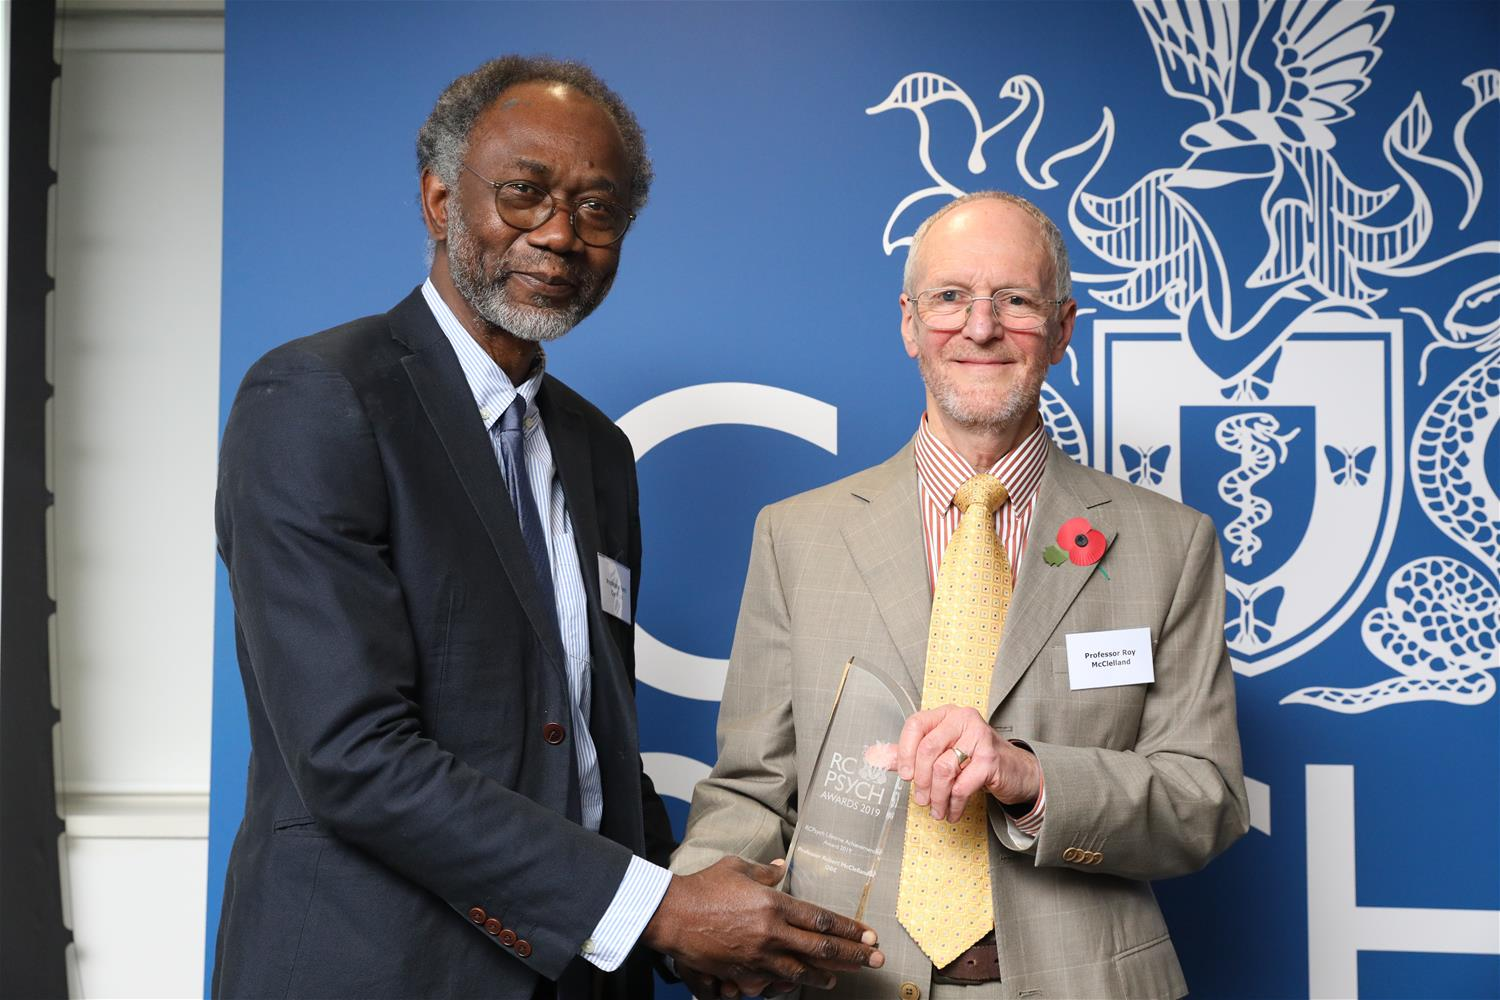 Professor Roy McClelland receives his award